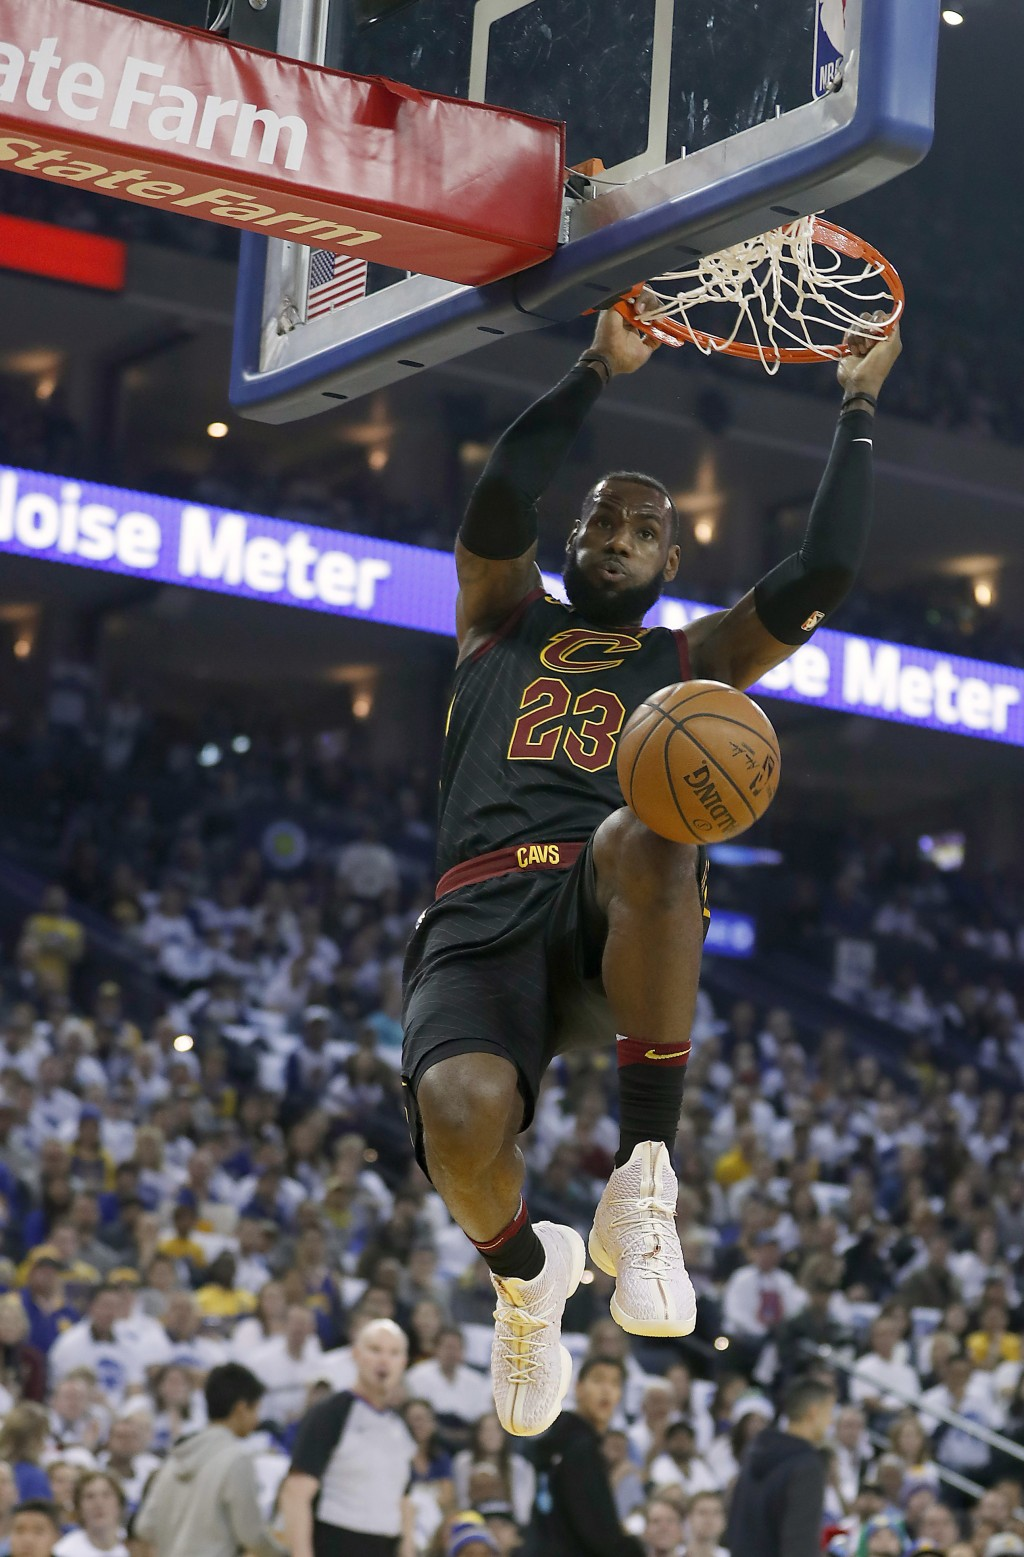 Cleveland Cavaliers forward LeBron James (23) dunks against the Golden State Warriors during the first half of an NBA basketball game in Oakland, Cali...